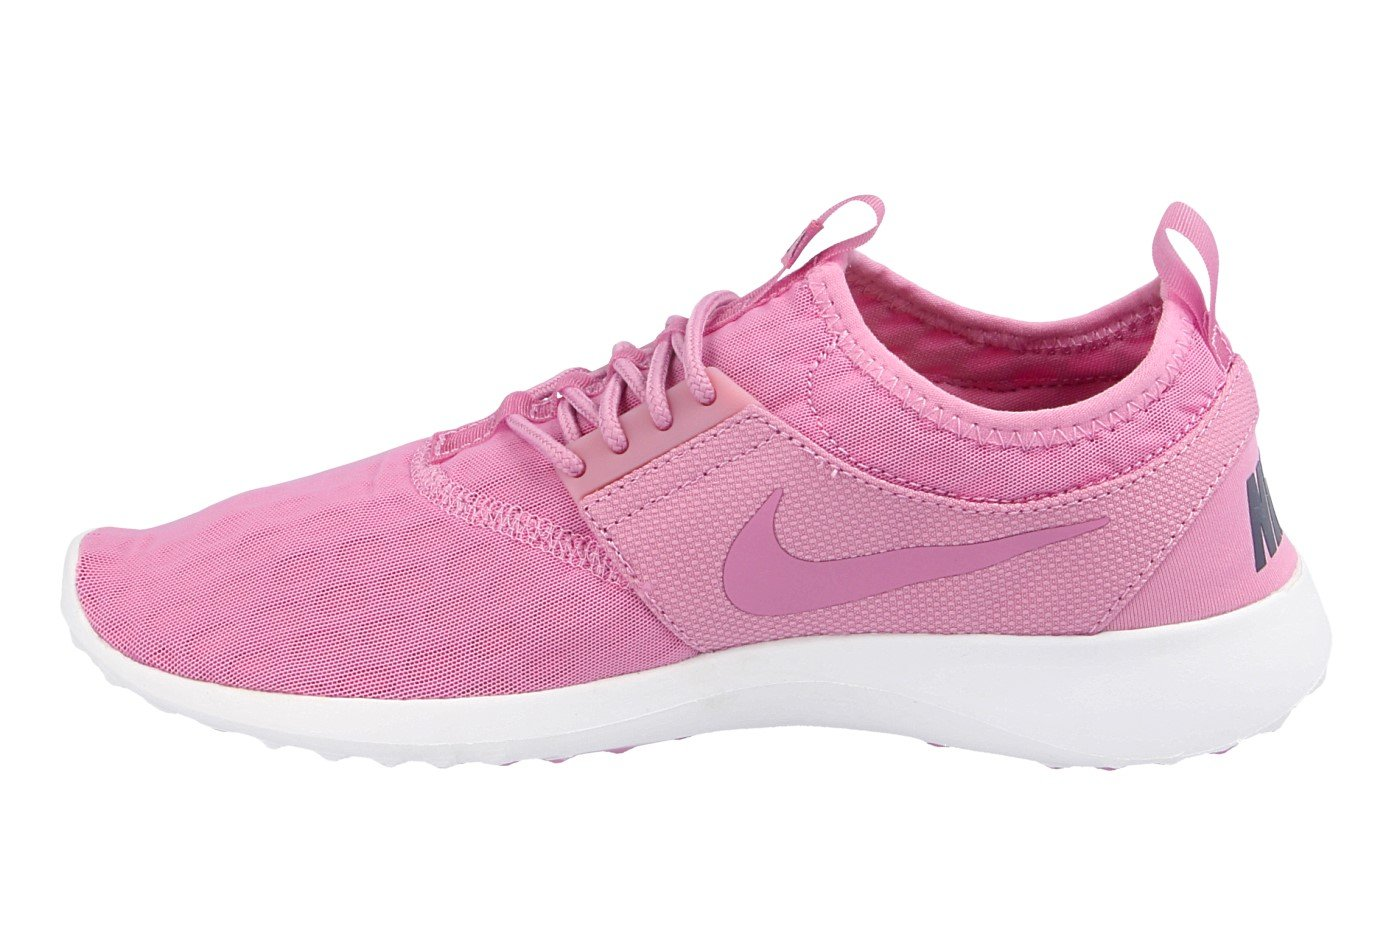 NIKE Women's Juvenate Running Shoe B071WLS49D 6 B(M) US|Orchid/Orchid/Midnight Navy White